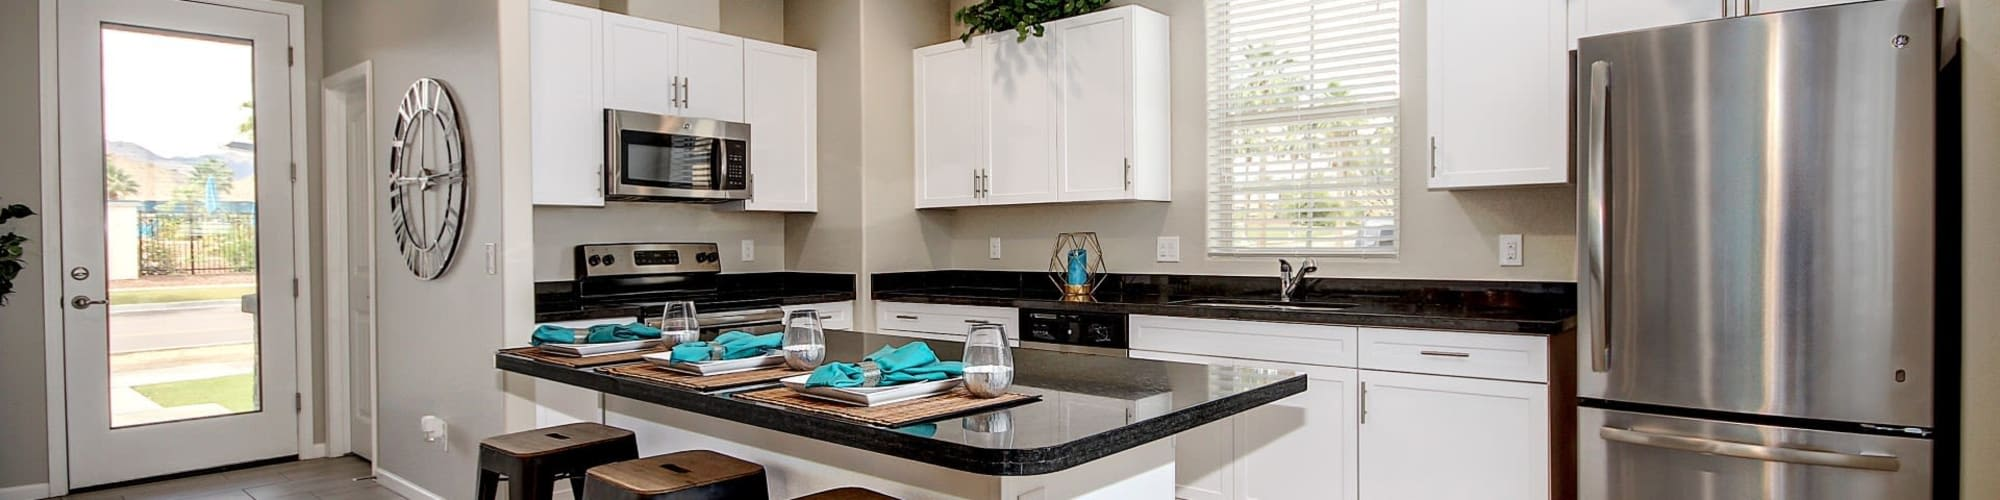 Apply to live at BB Living at Eastmark in Mesa, Arizona